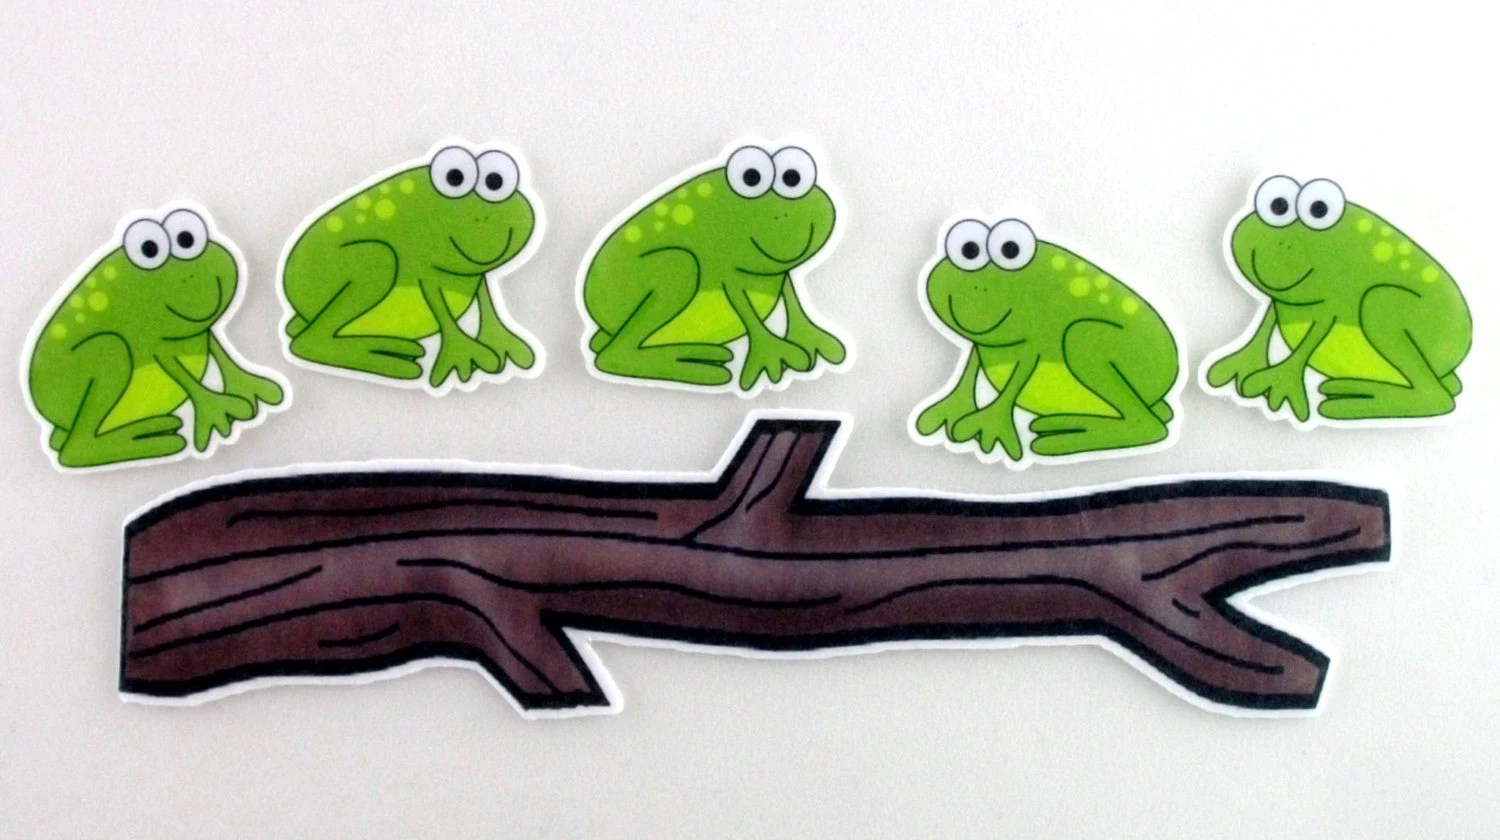 Five Little Speckled Frogs Felt Board Activity Set By Bymaree